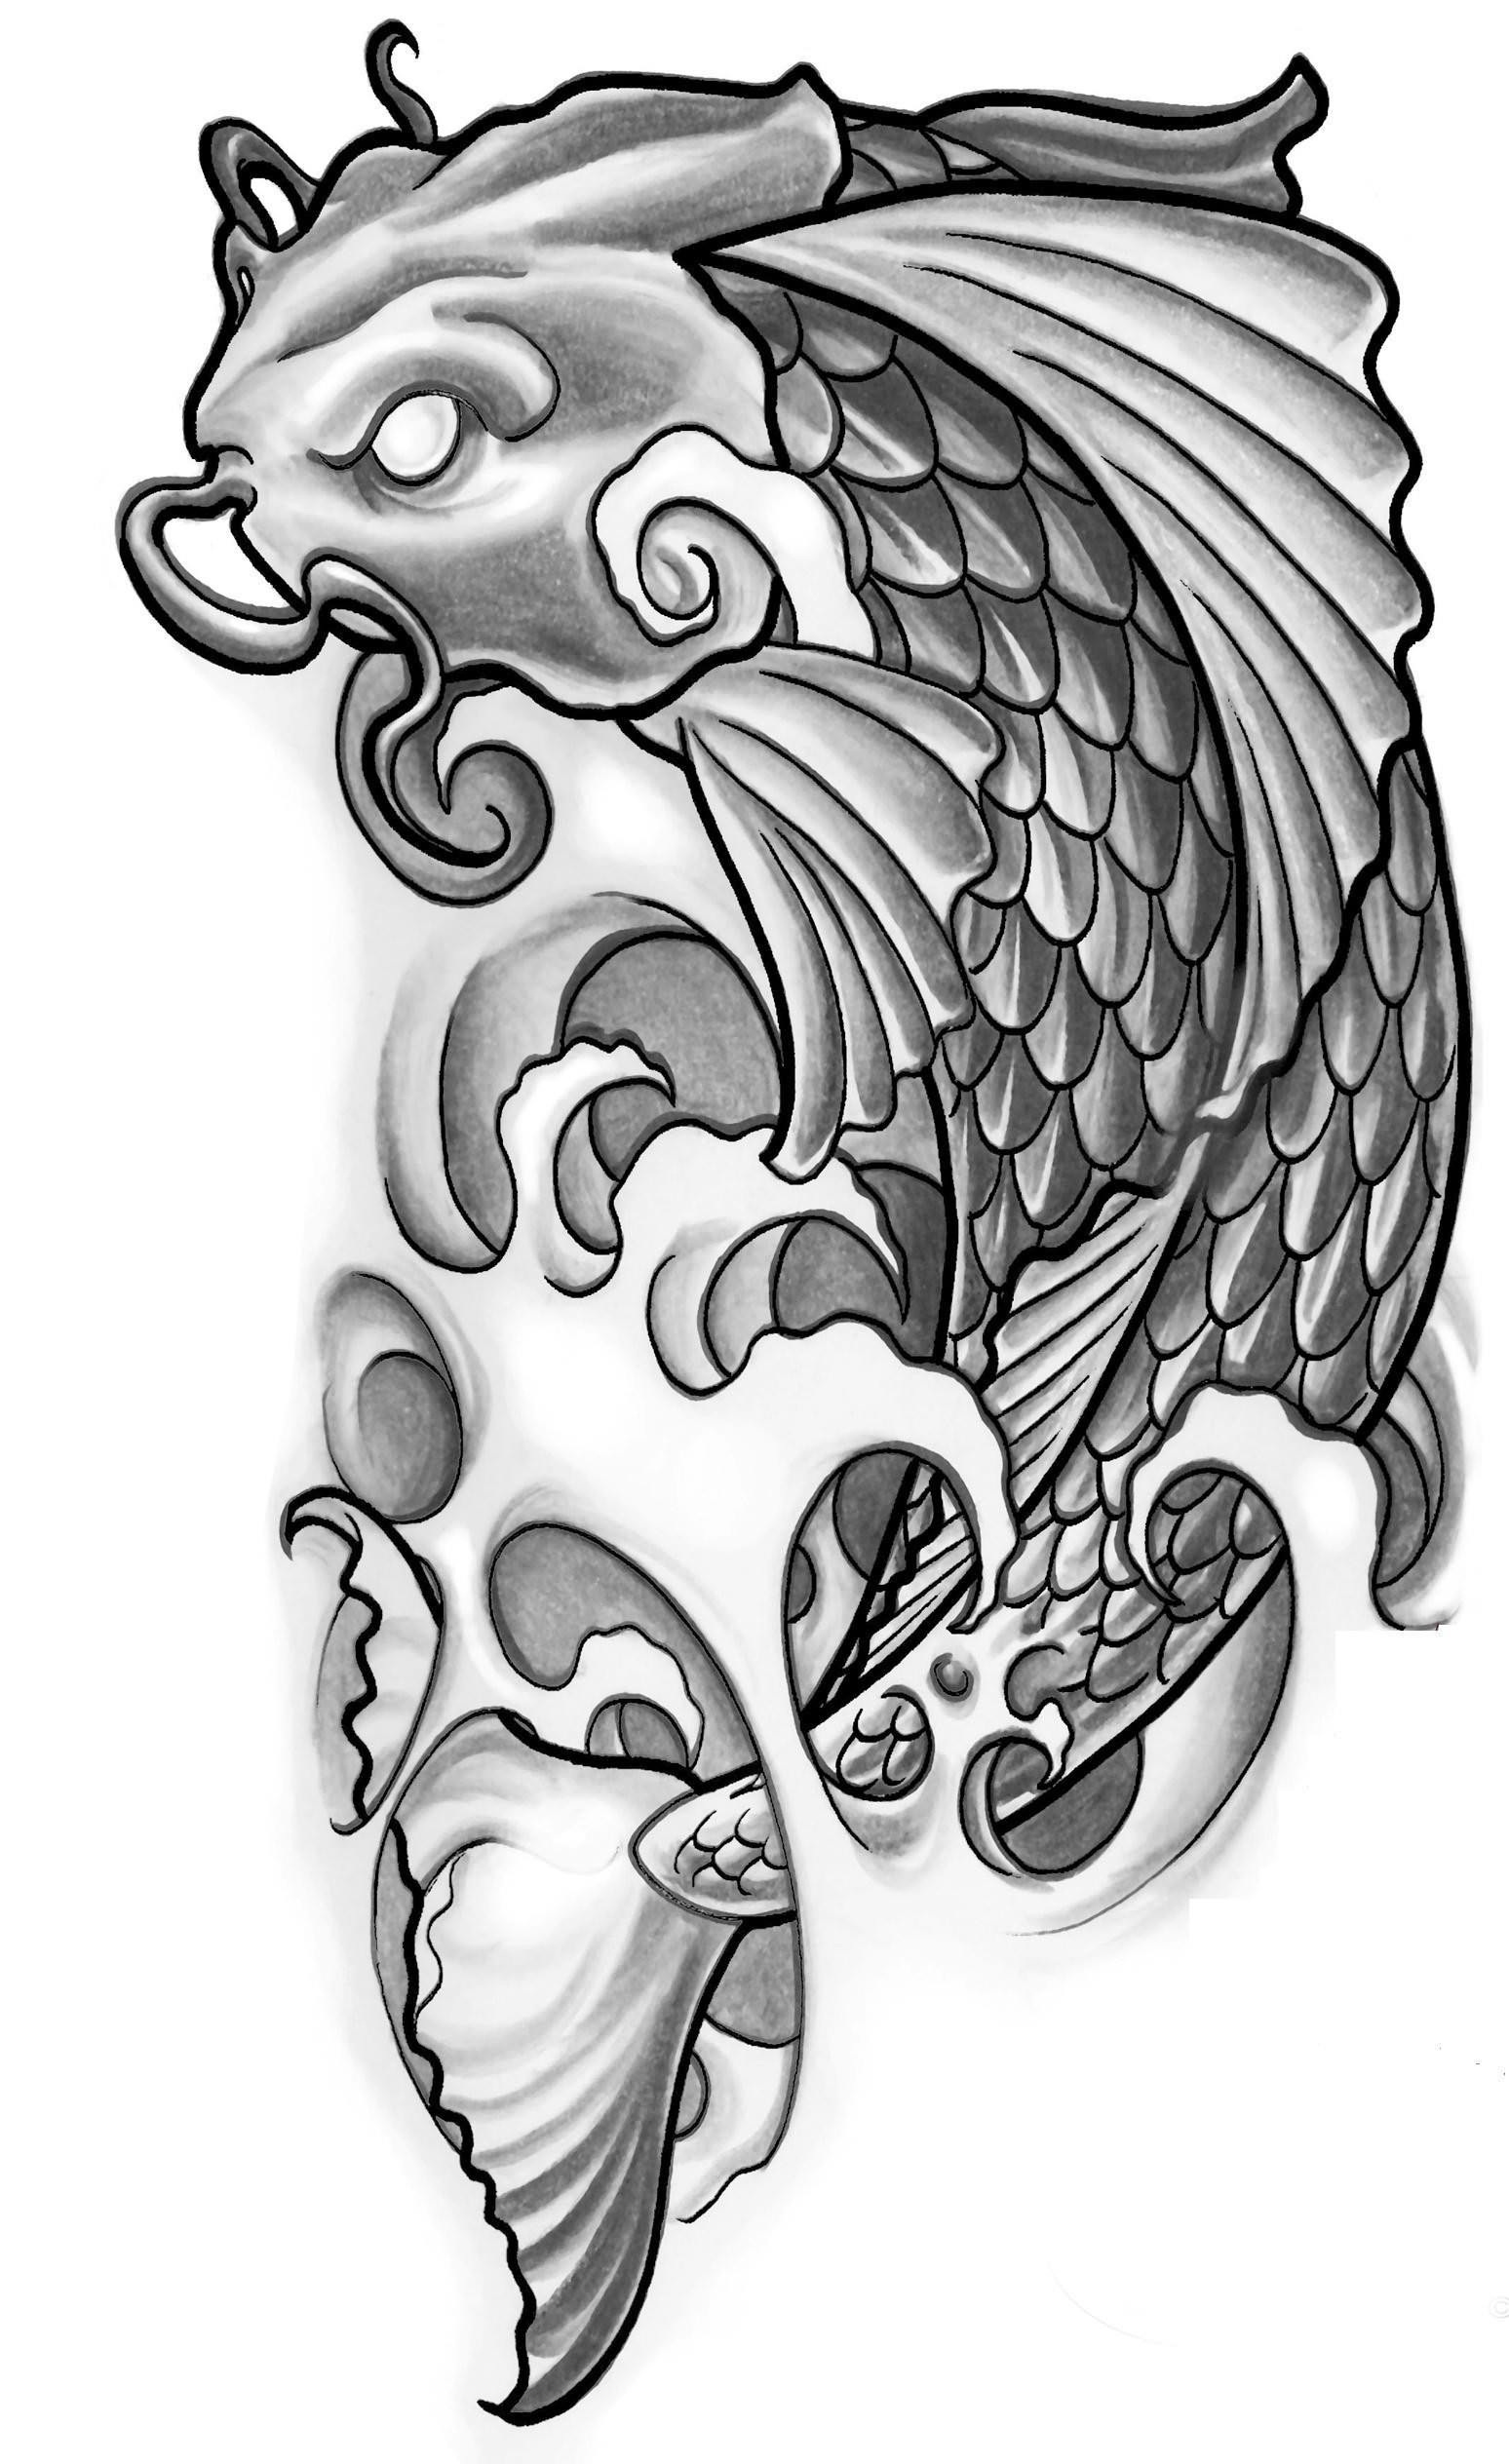 Koi tattoos designs ideas and meaning tattoos for you for Black koi fish meaning